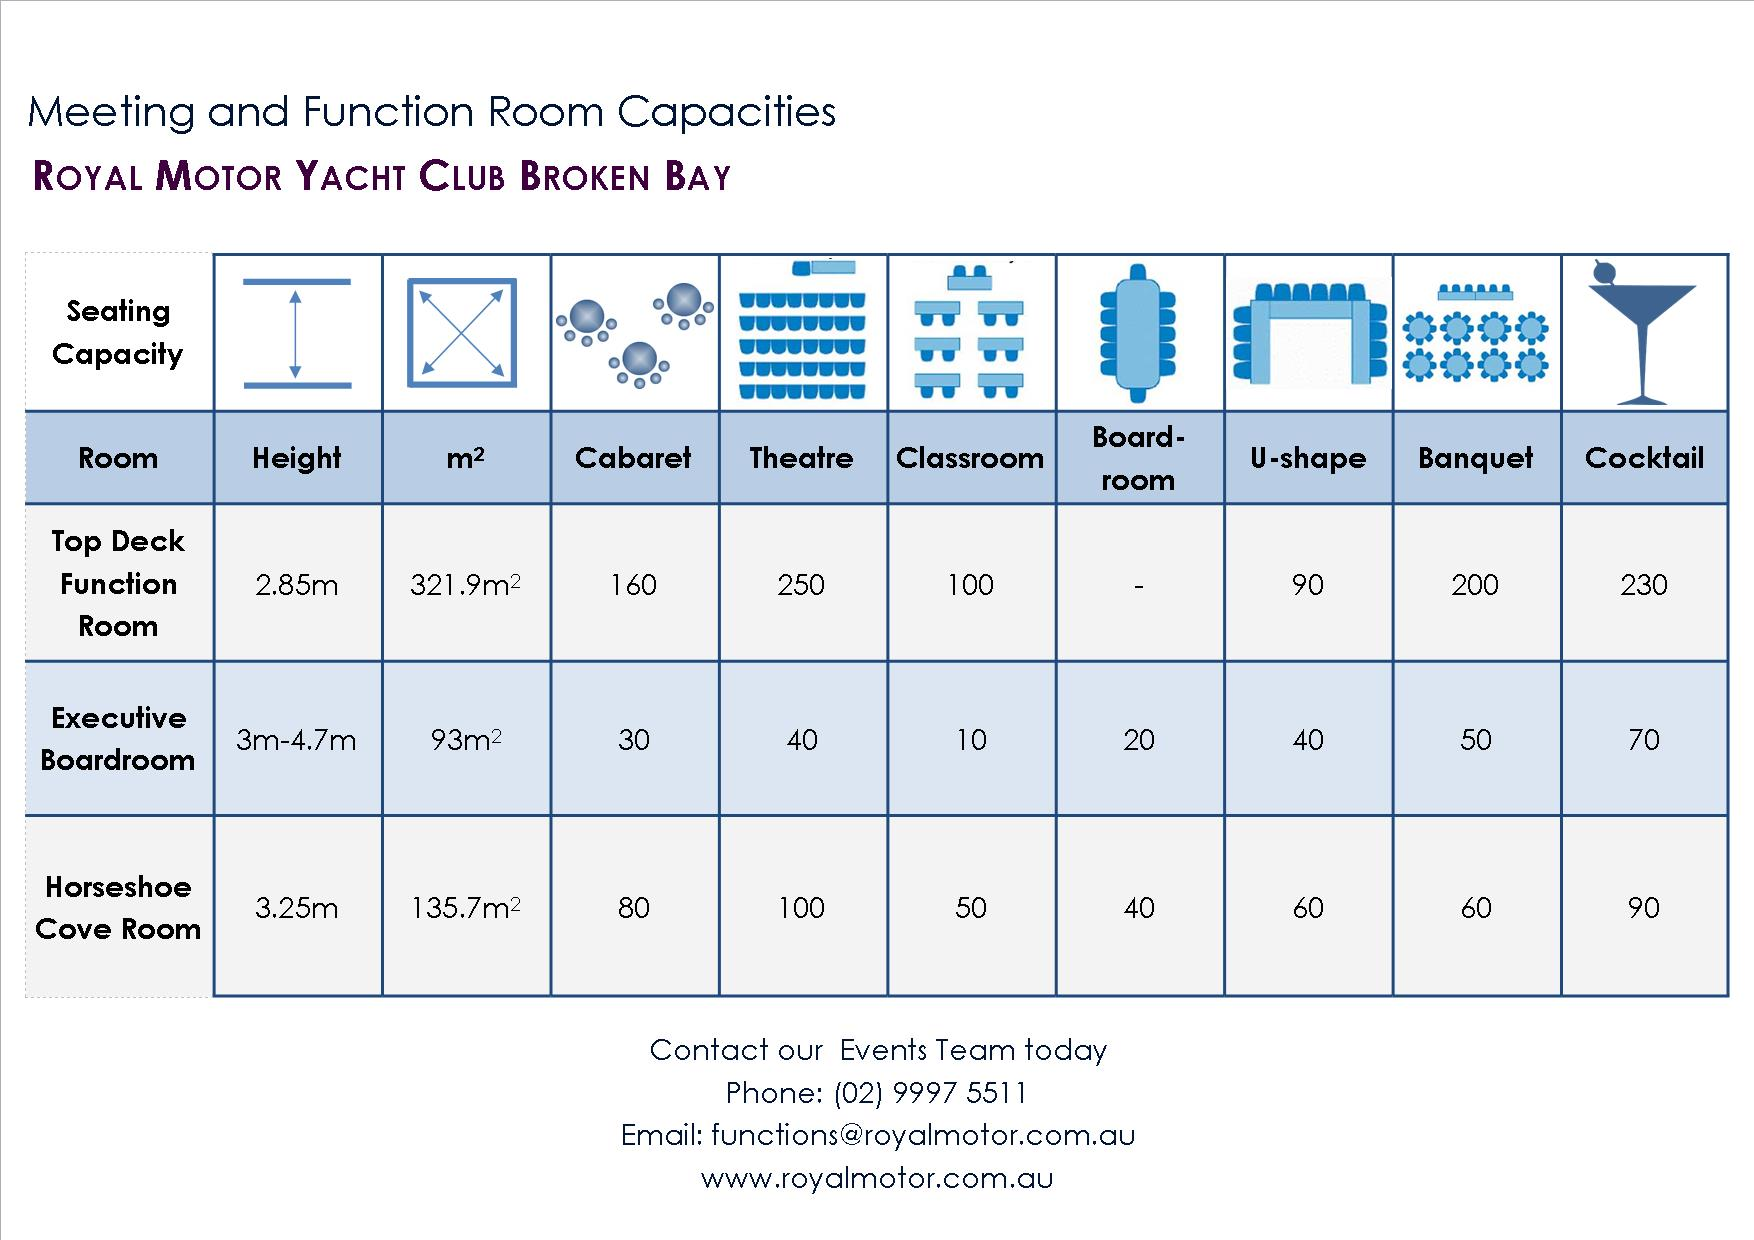 Conference Room Capacities